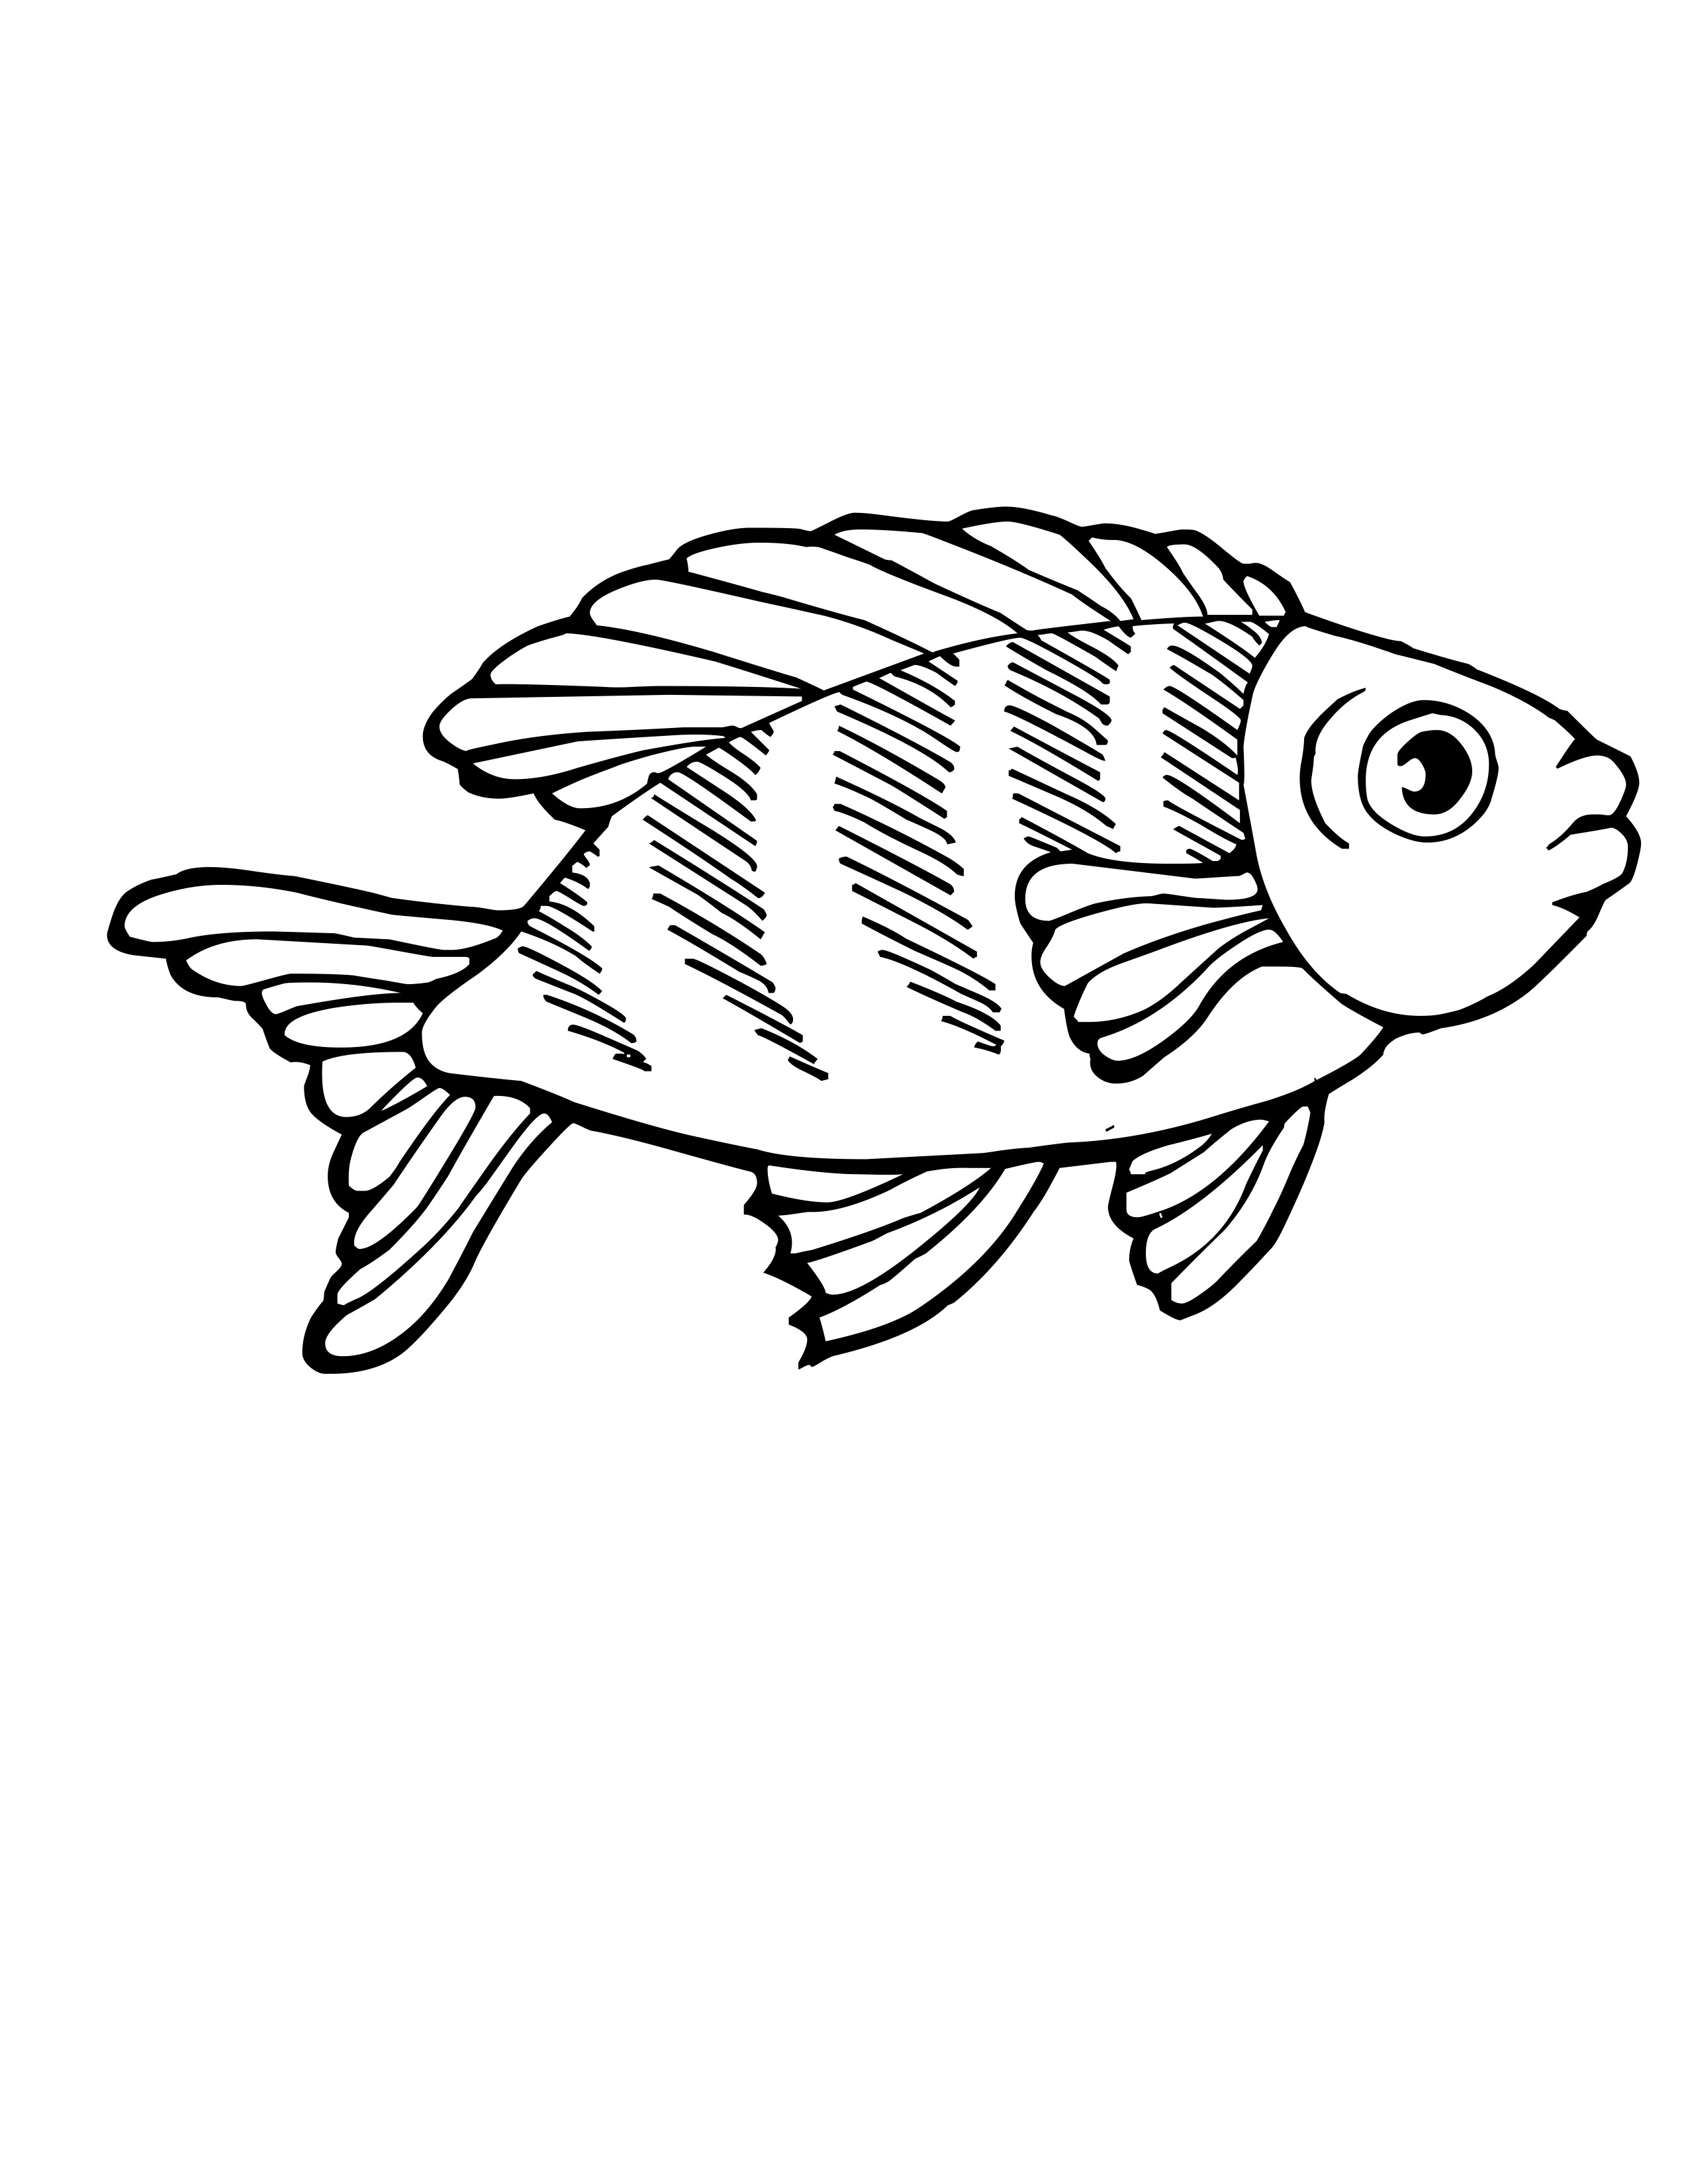 Fish Coloring Pages Aradio